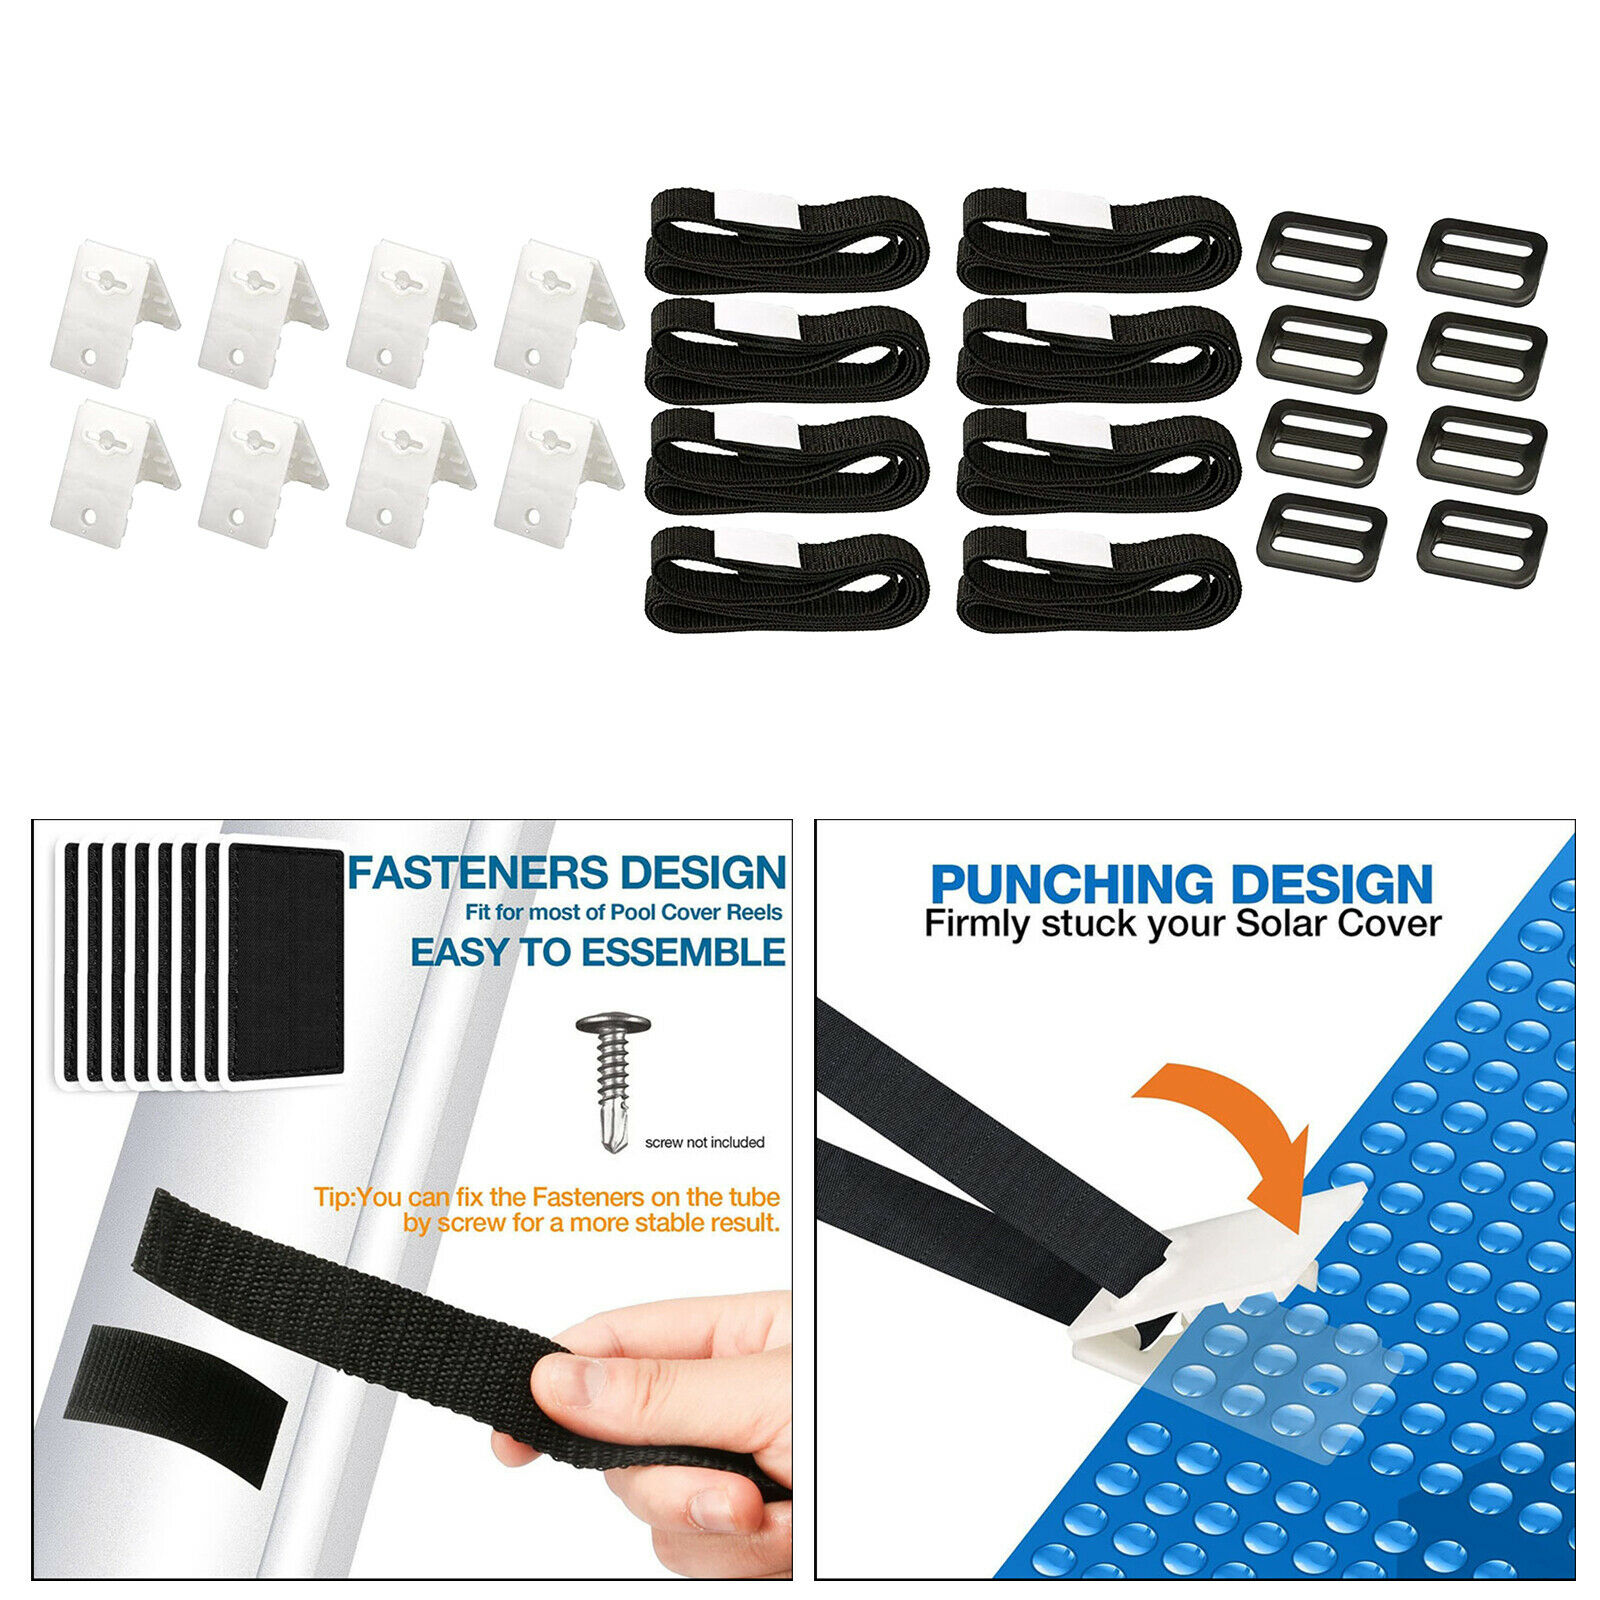 24Pieces Solar Cover Reel Attachment Straps Kit for In Ground Swimming Pool